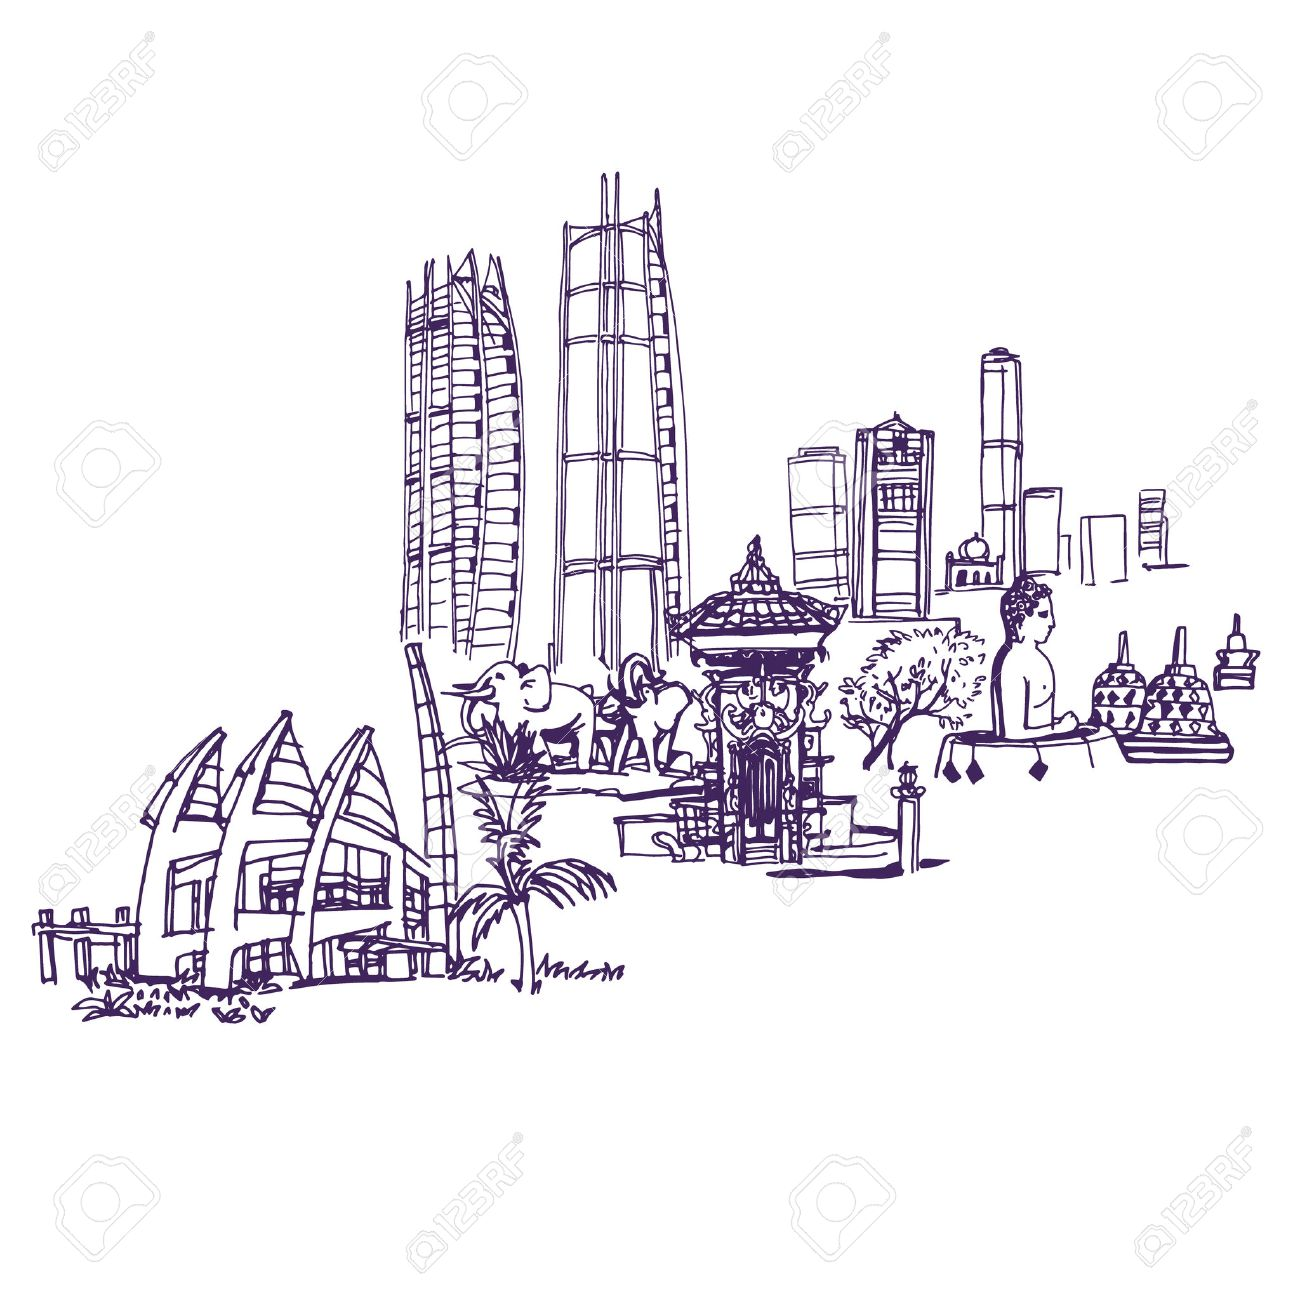 jakarta skyline places and architecture around the world